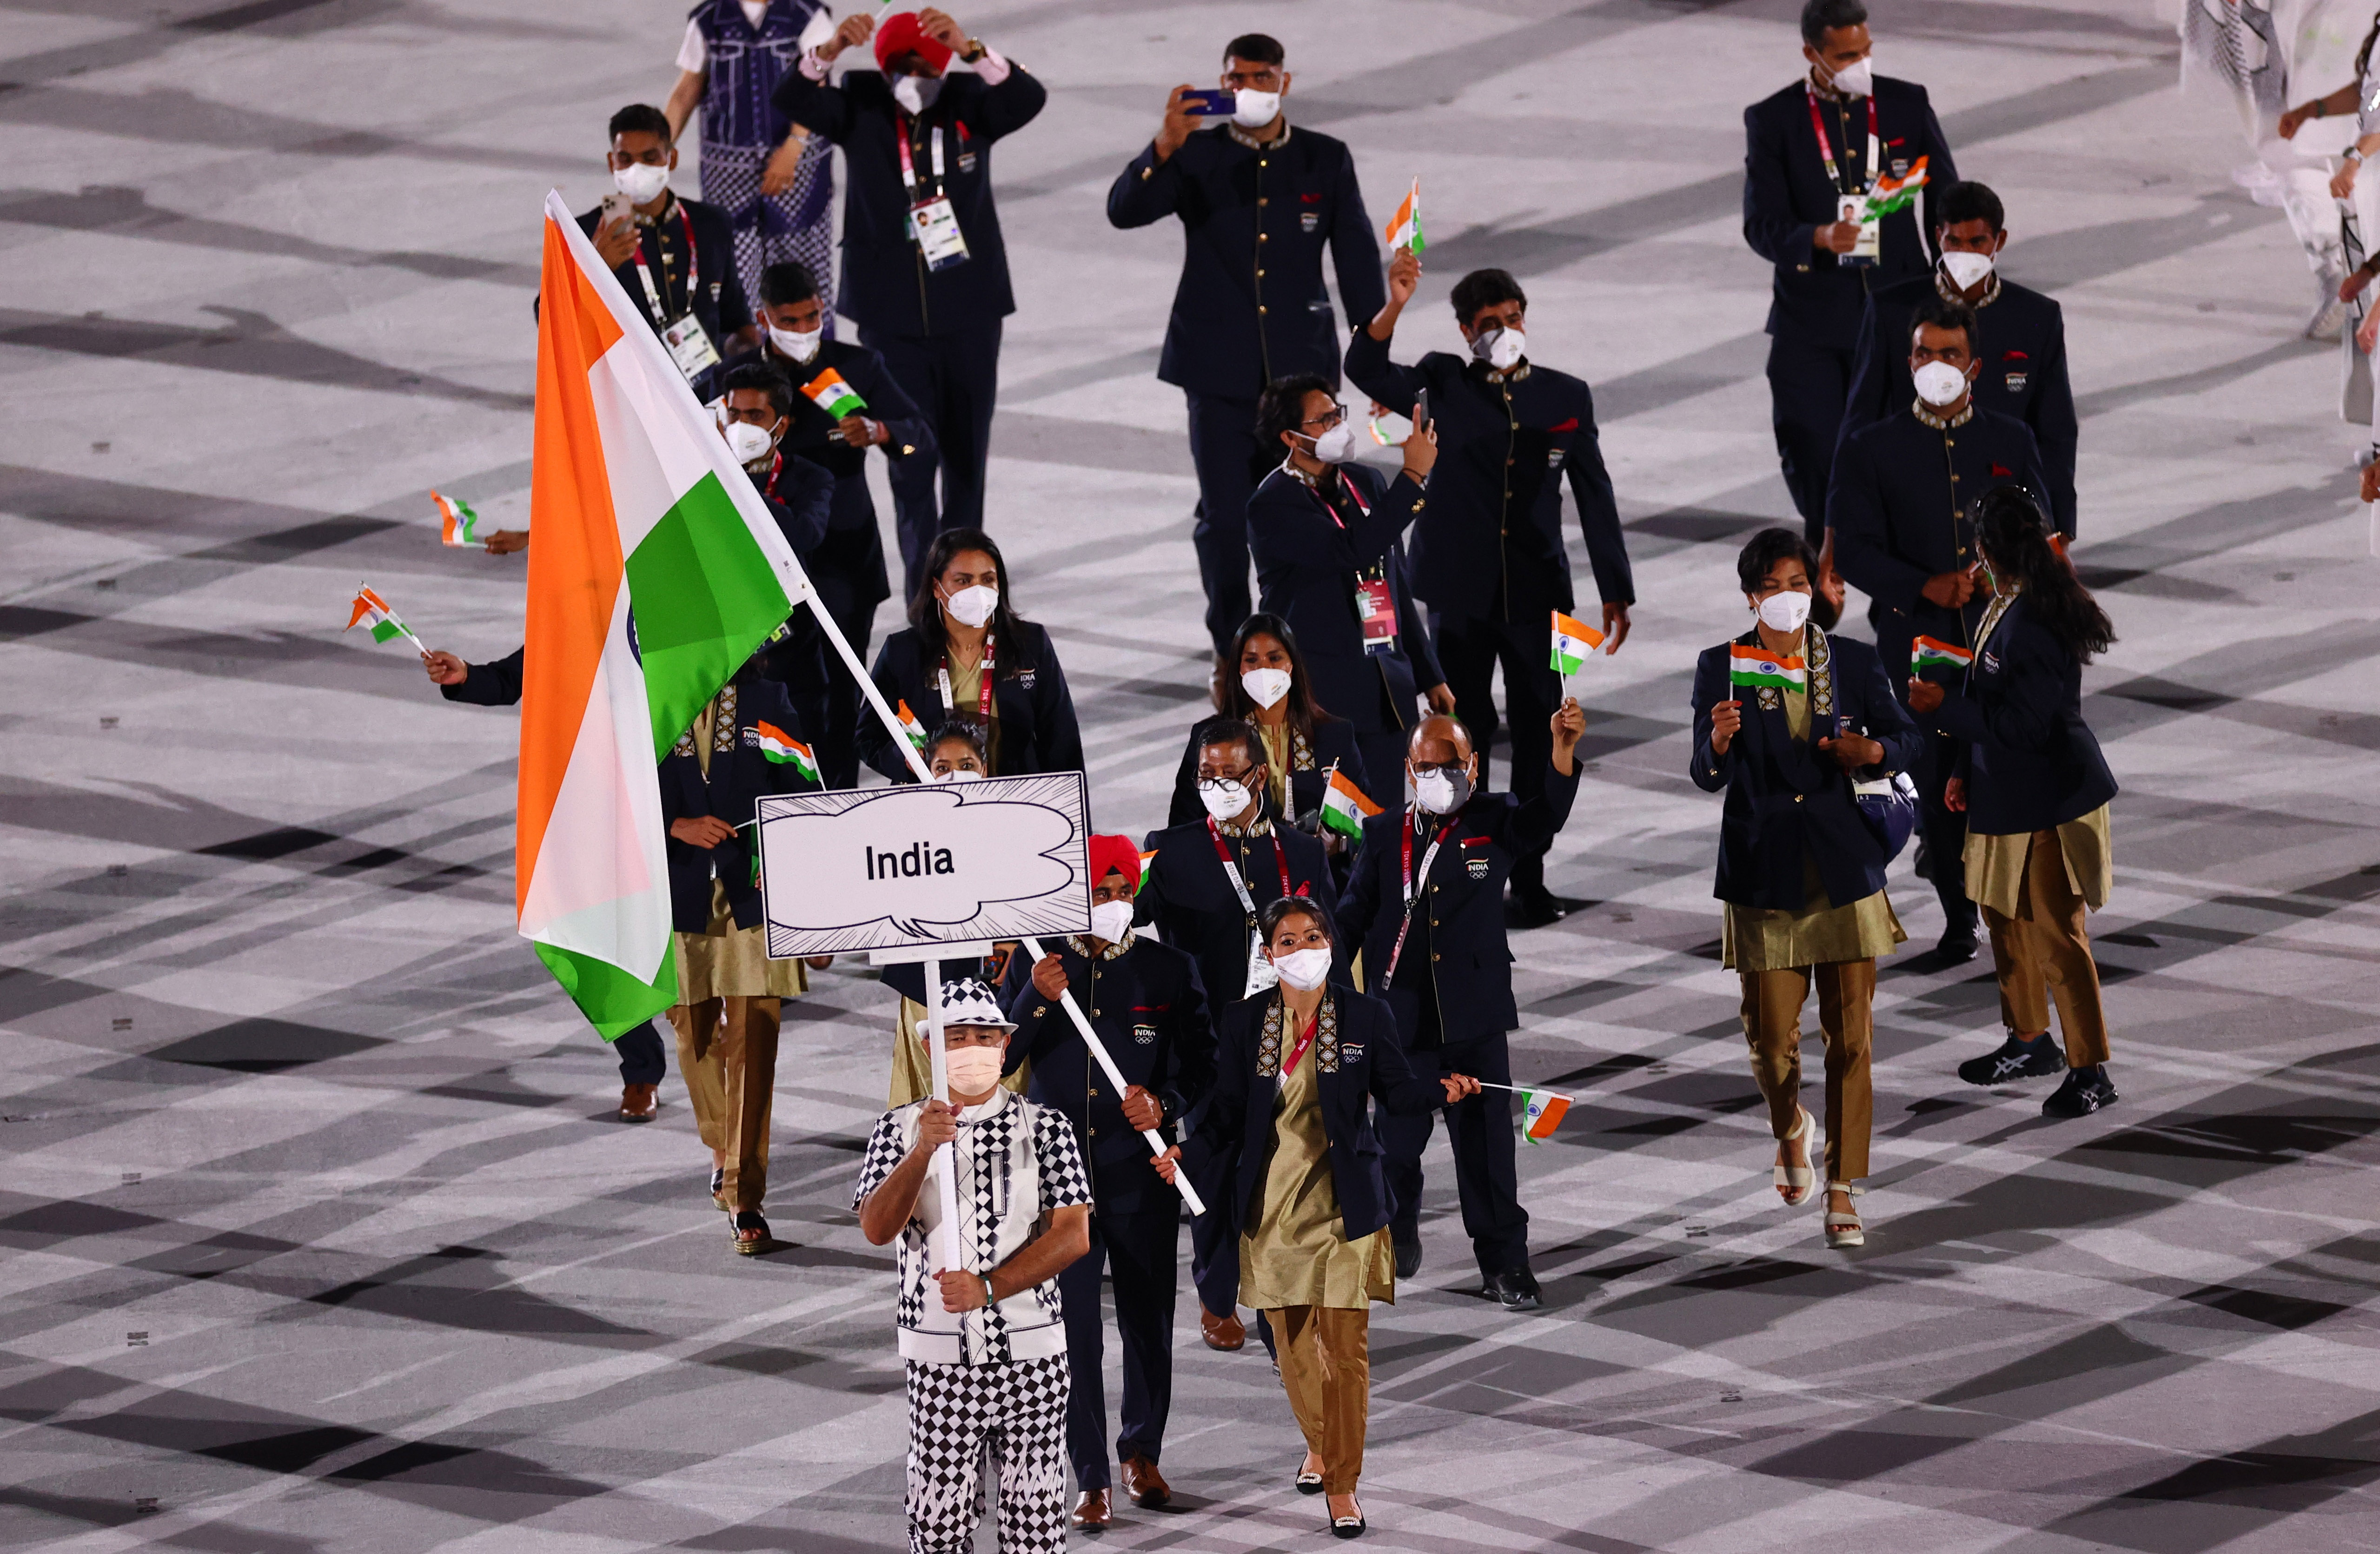 Tokyo 2020 Olympics - The Tokyo 2020 Olympics Opening Ceremony - Olympic Stadium, Tokyo, Japan - July 23, 2021. Mary Kom Hmangte of India and Harmanpreet Singh of India lead their contingent in the athletes parade during the opening ceremony REUTERS/Mike Blake/Files